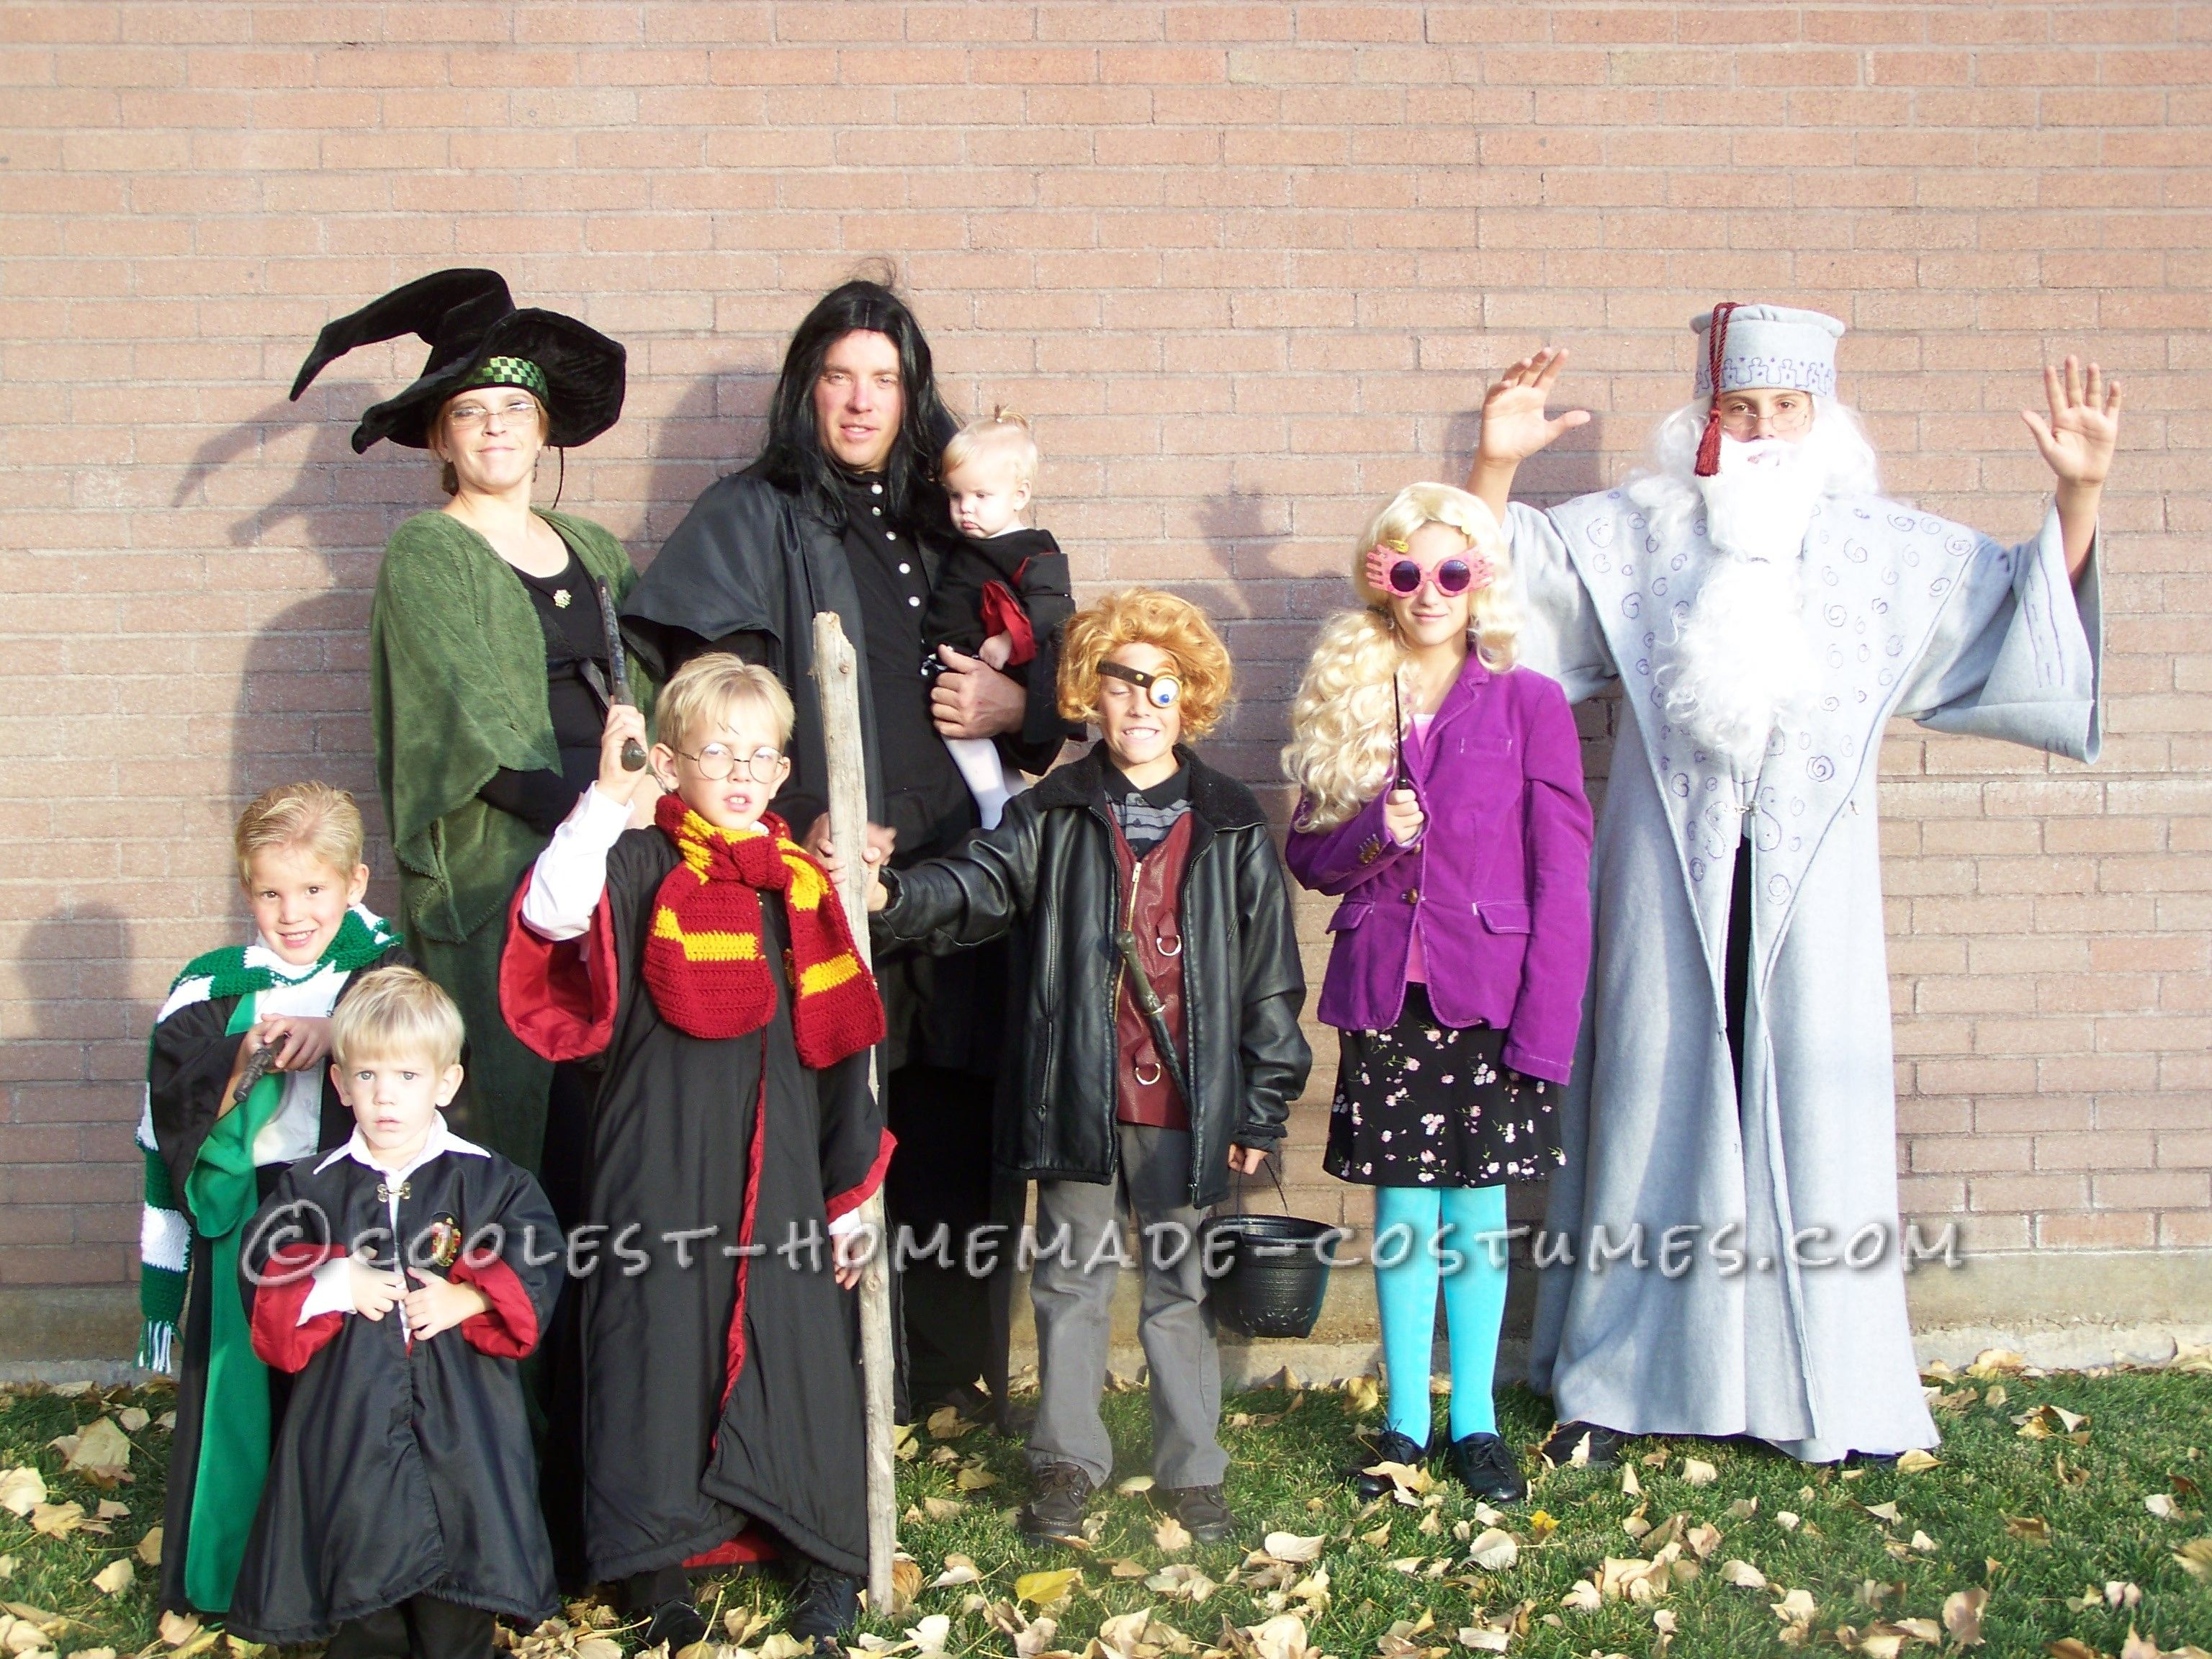 coolest harry potter family halloween costume family. Black Bedroom Furniture Sets. Home Design Ideas